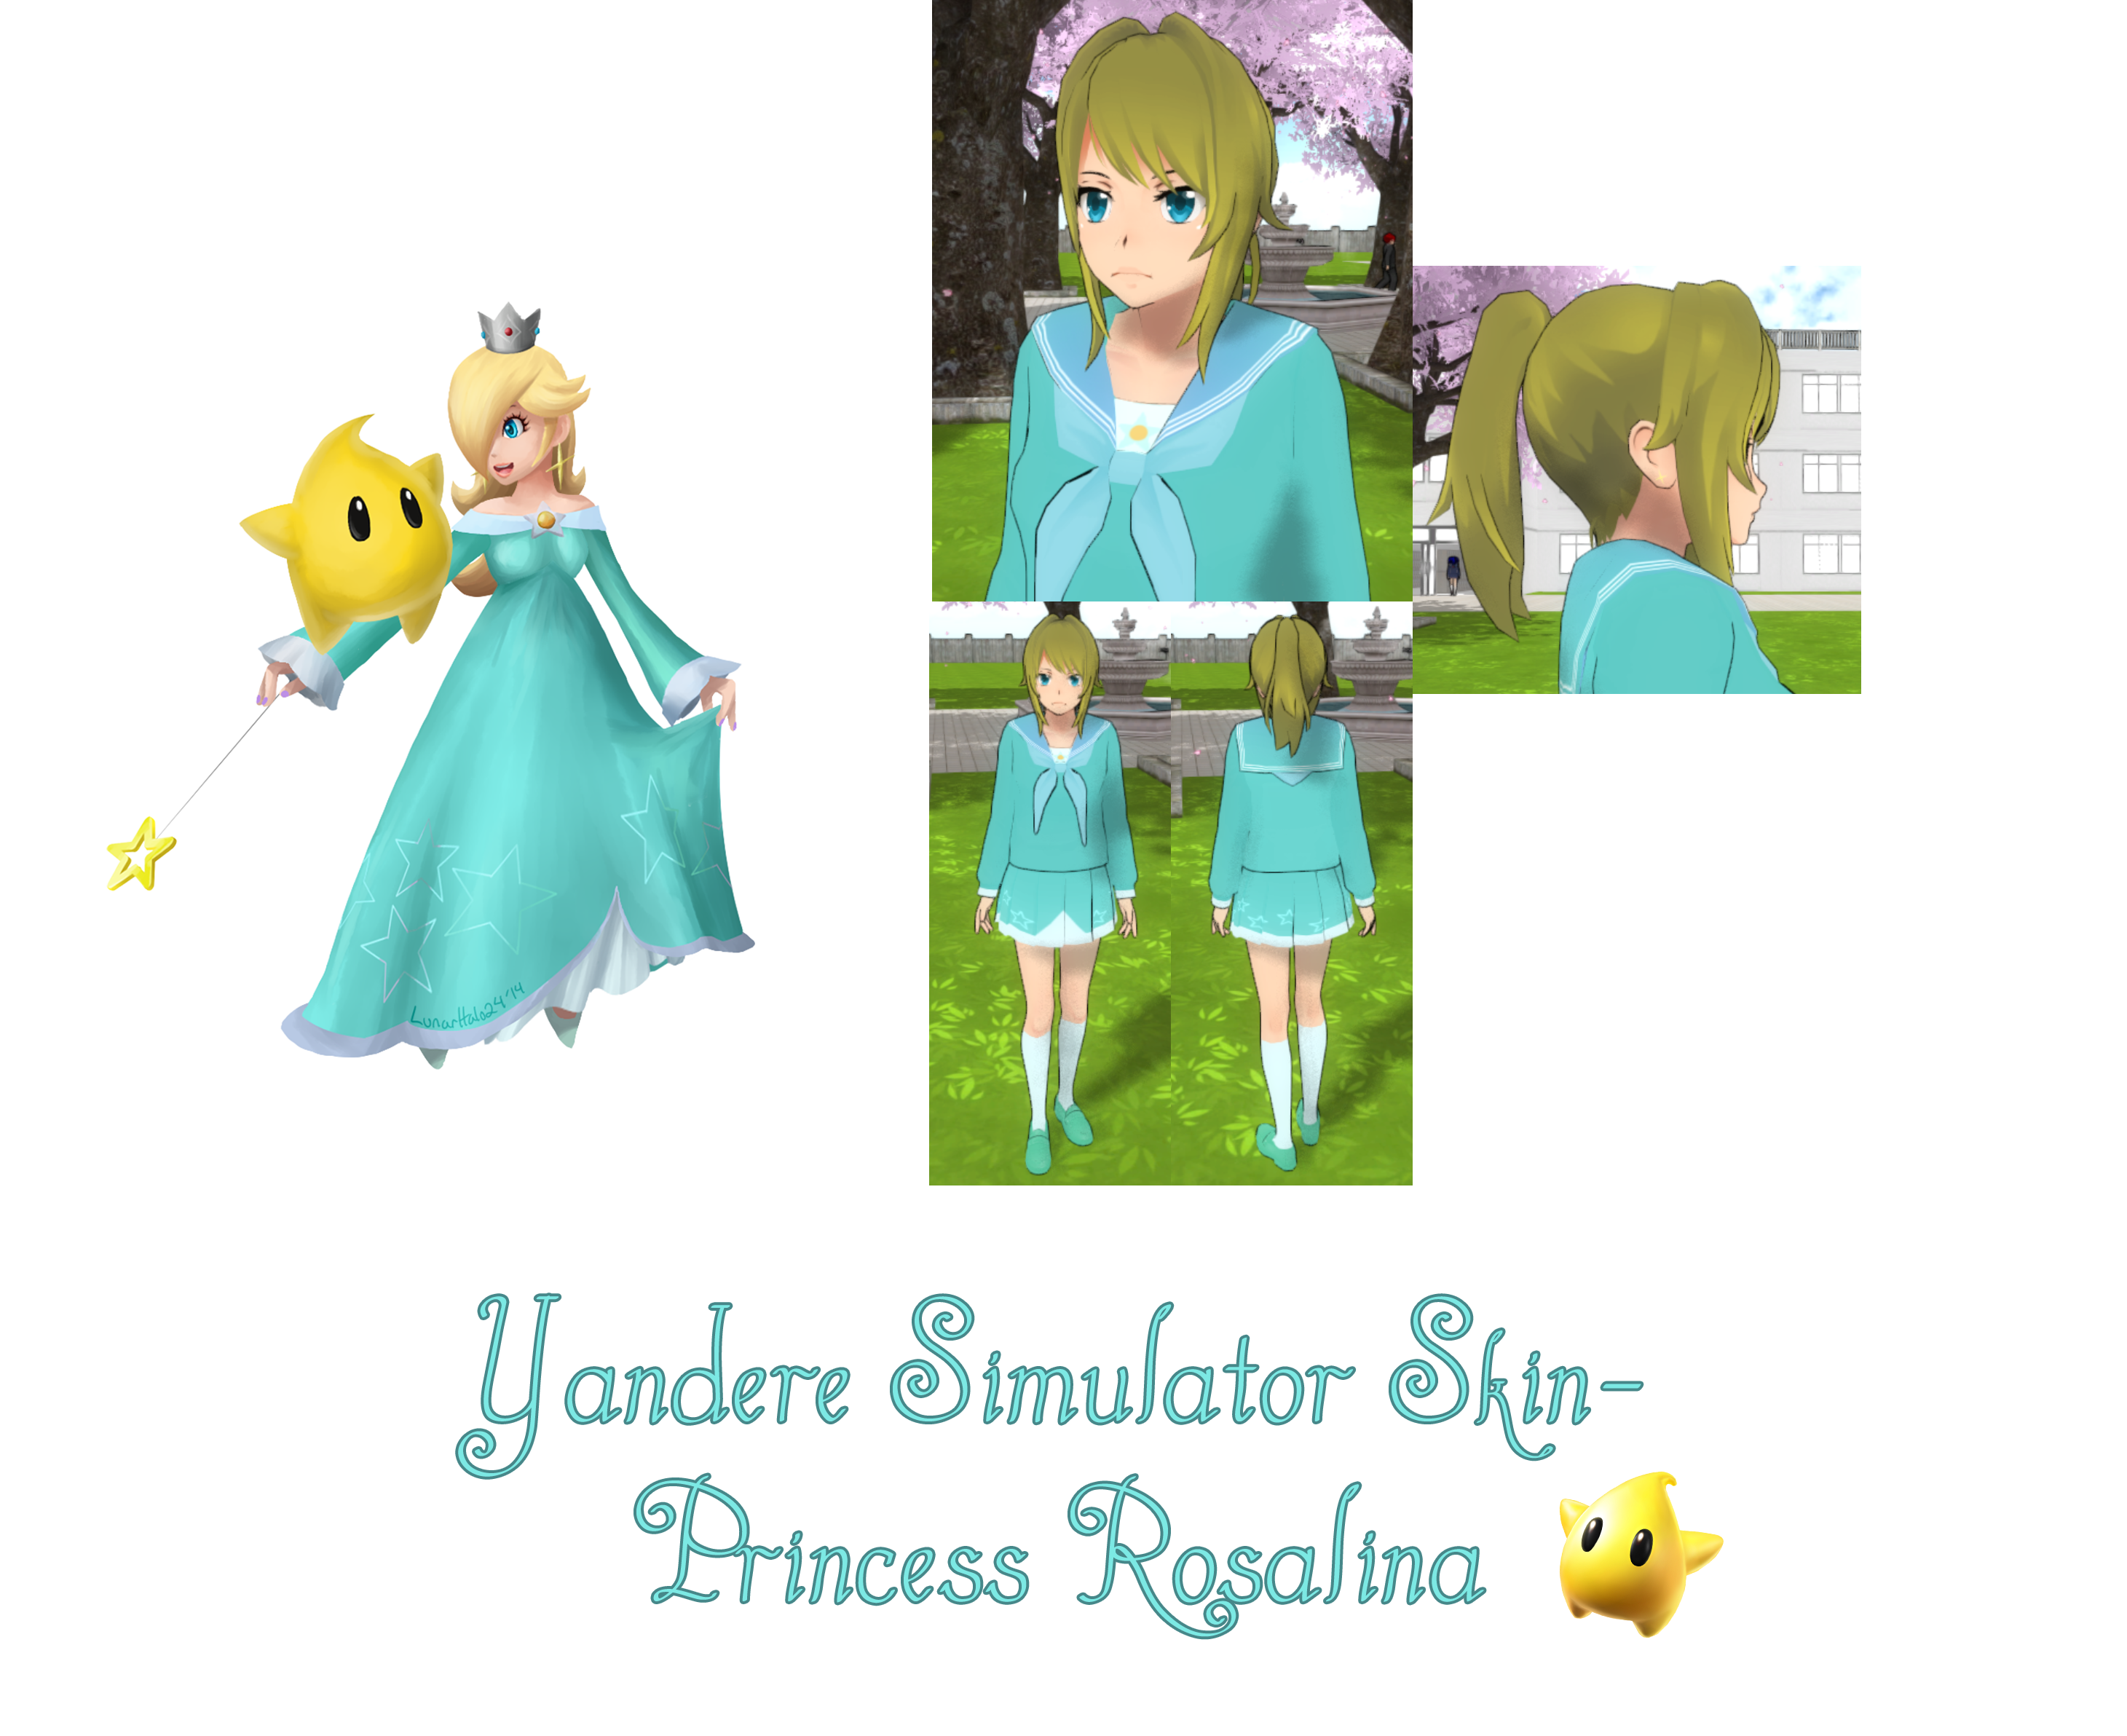 Yandere Simulator Princess Rosalina Skin By Imaginaryalchemist On